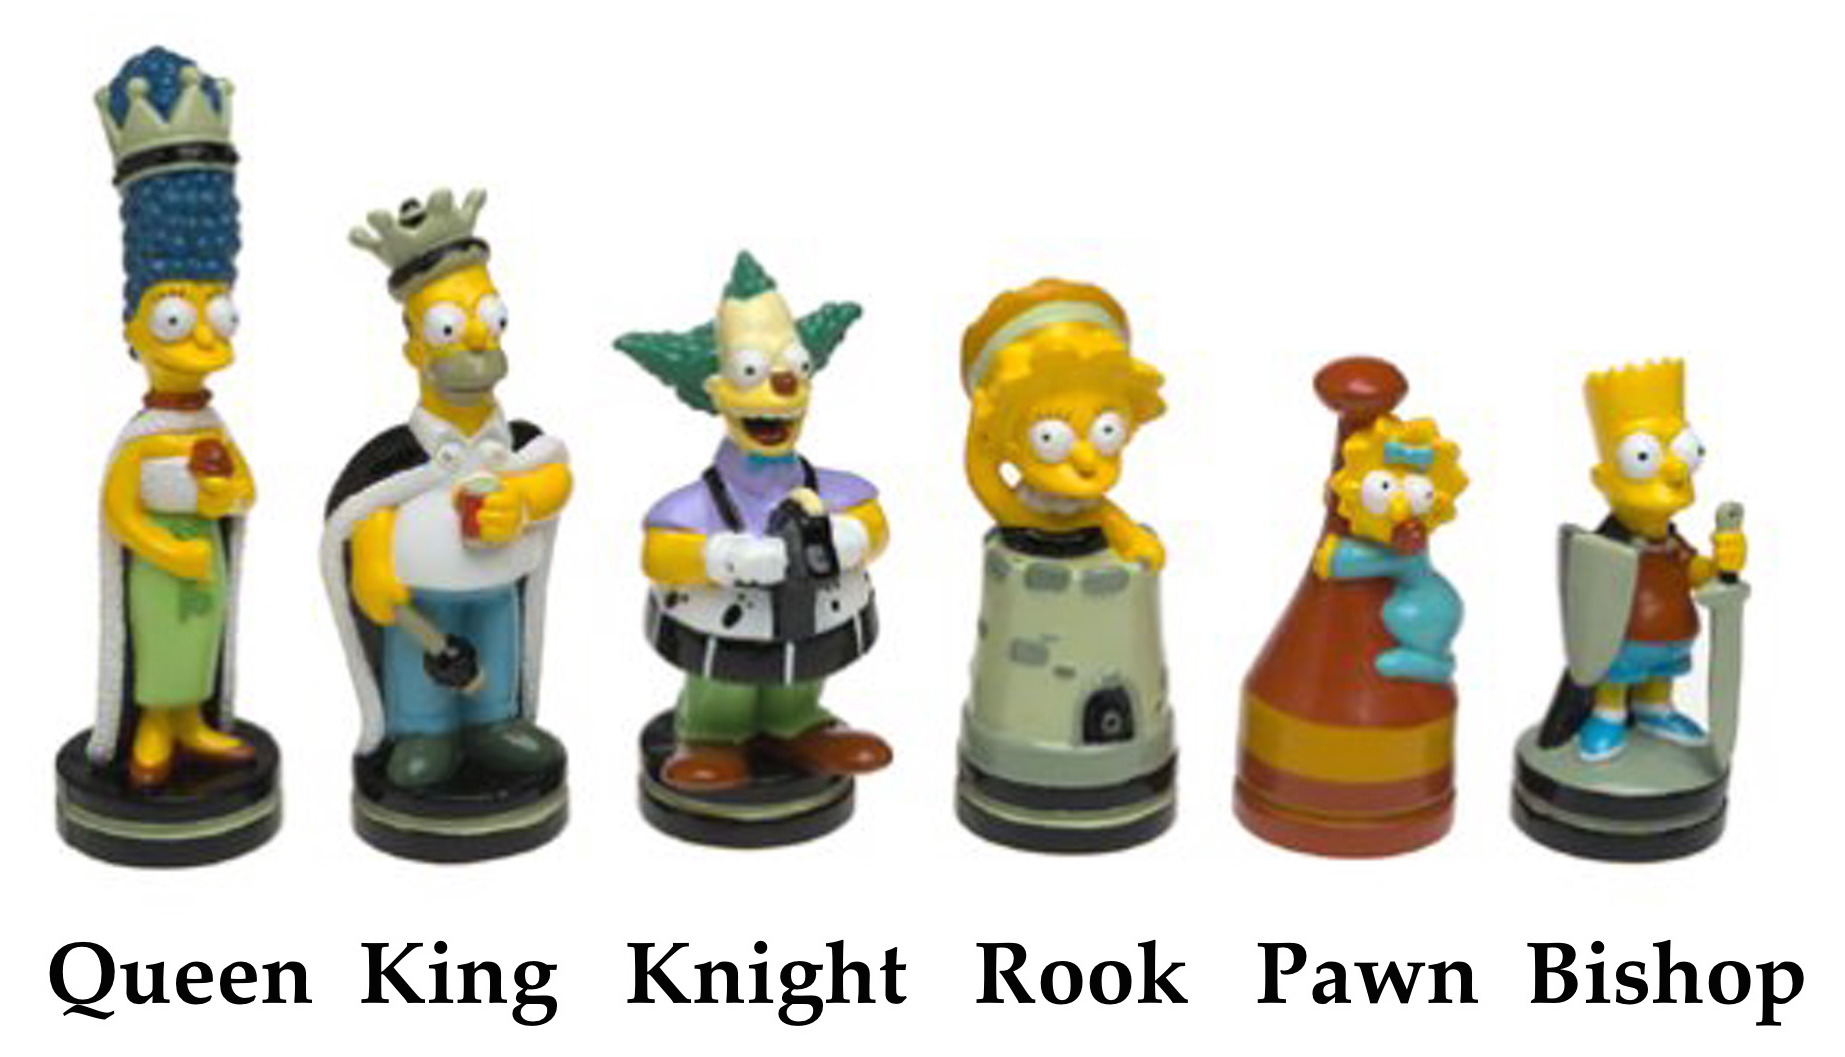 Simpsons_chess_pieces.JPG